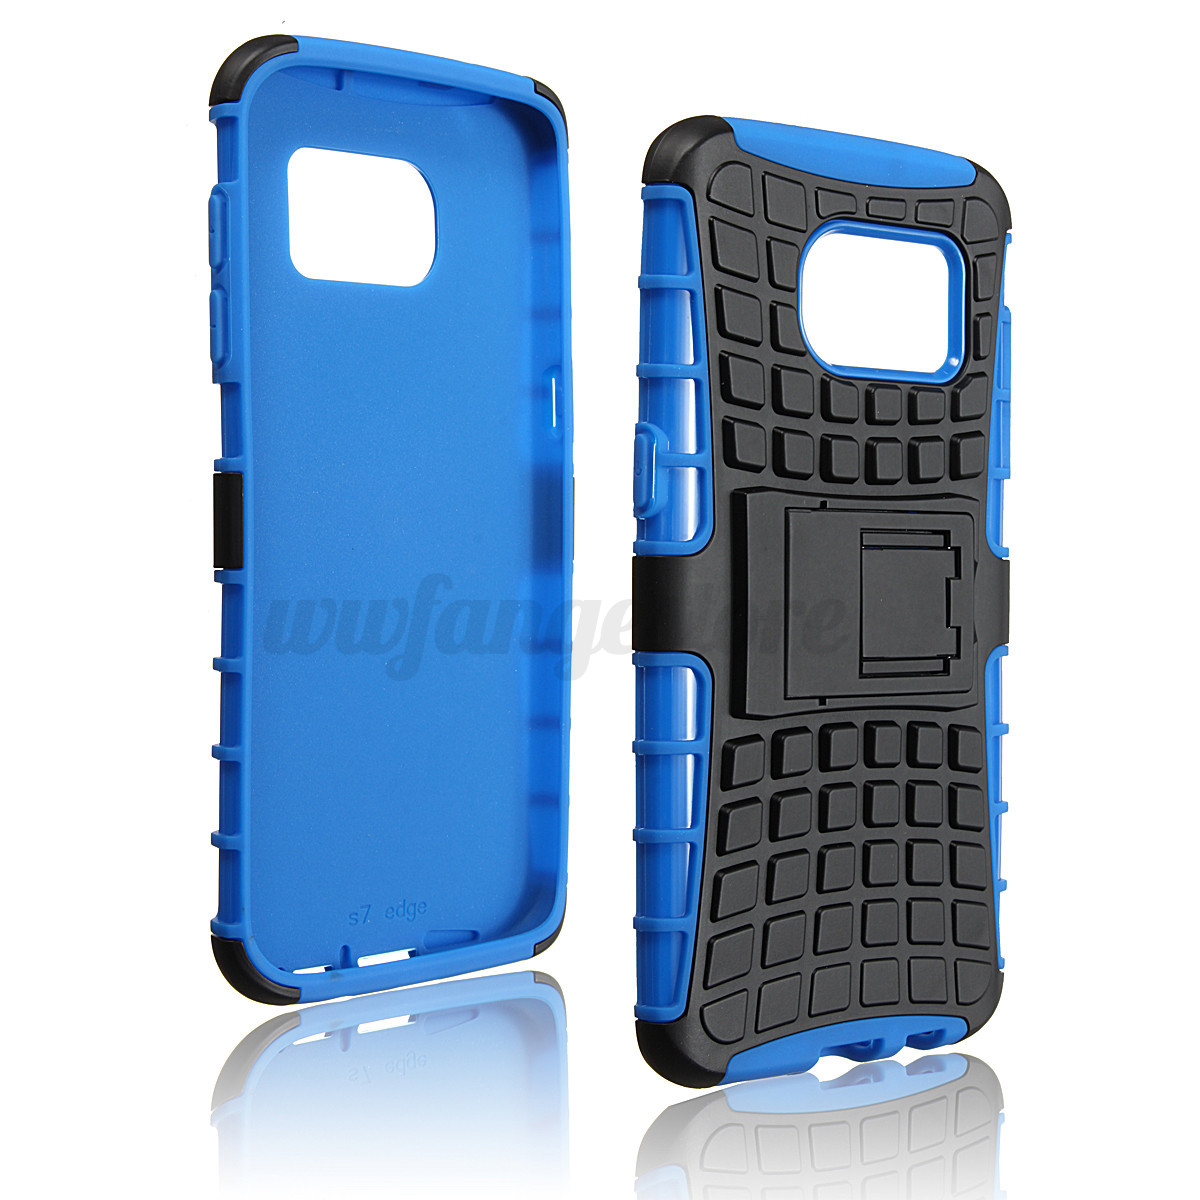 Double couche silicone pc etui coque housse support pour for Housse samsung s7